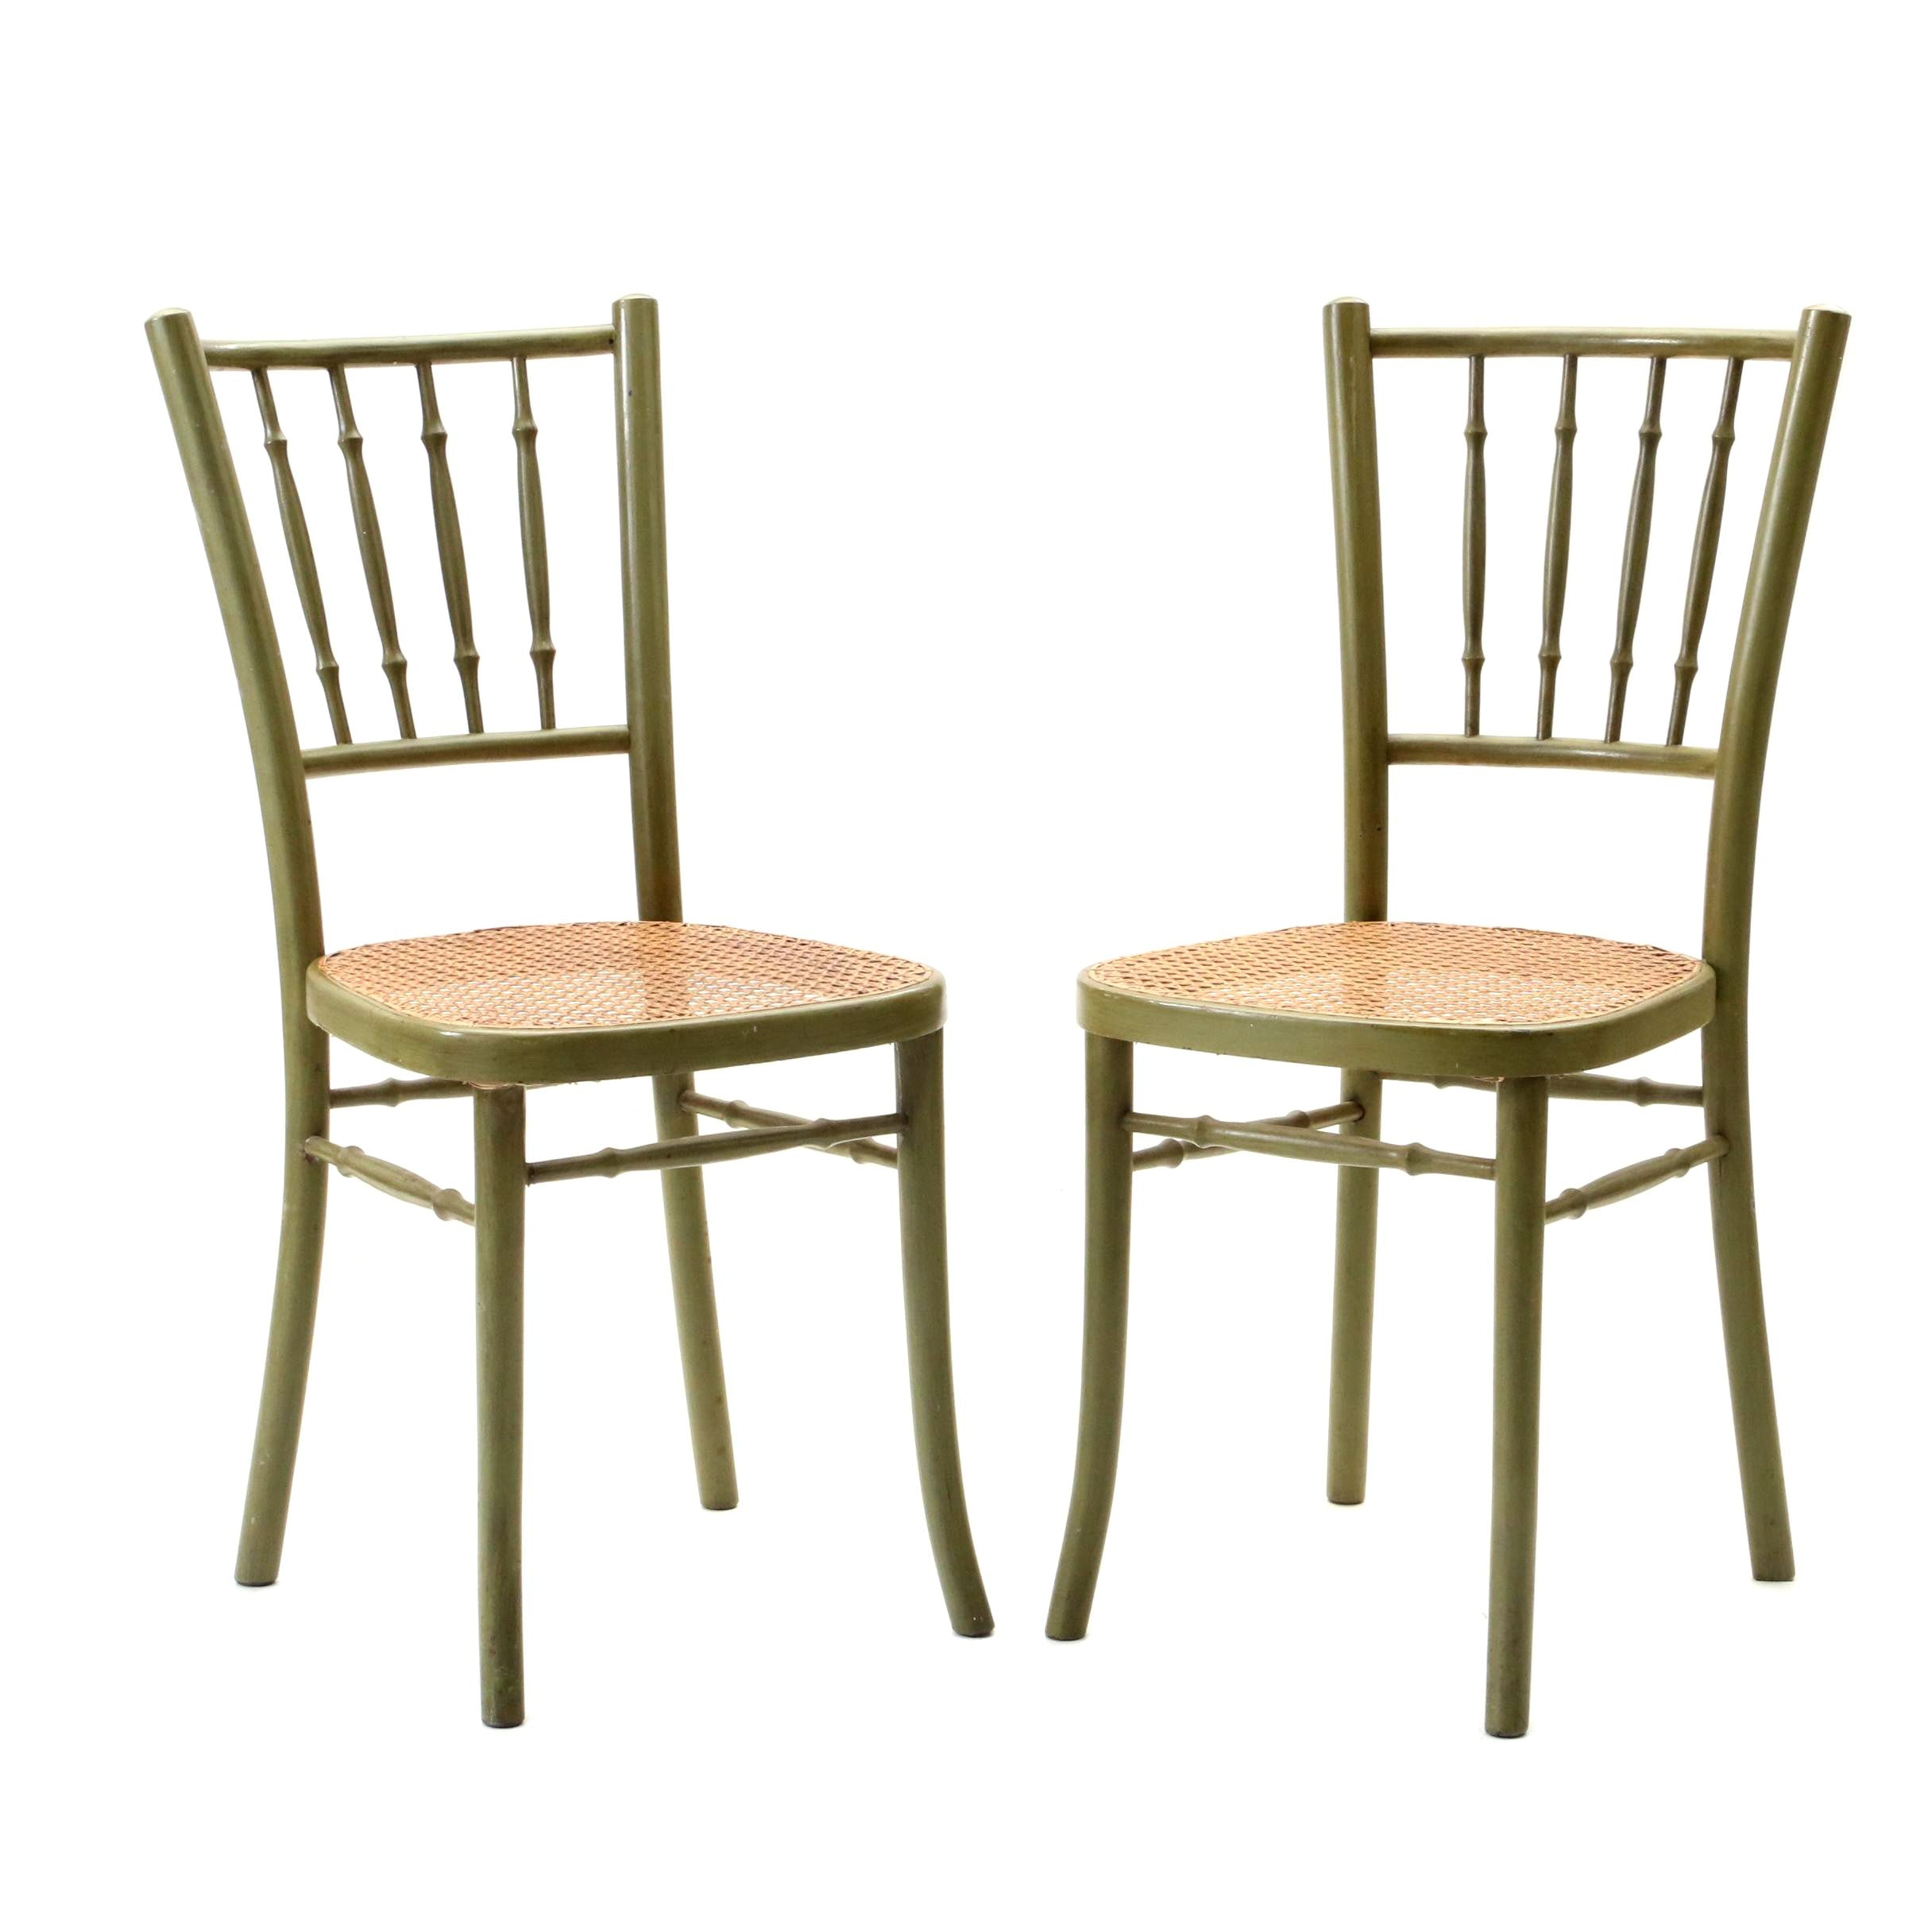 Painted Side Chairs with Woven Seats, Late 20th Century